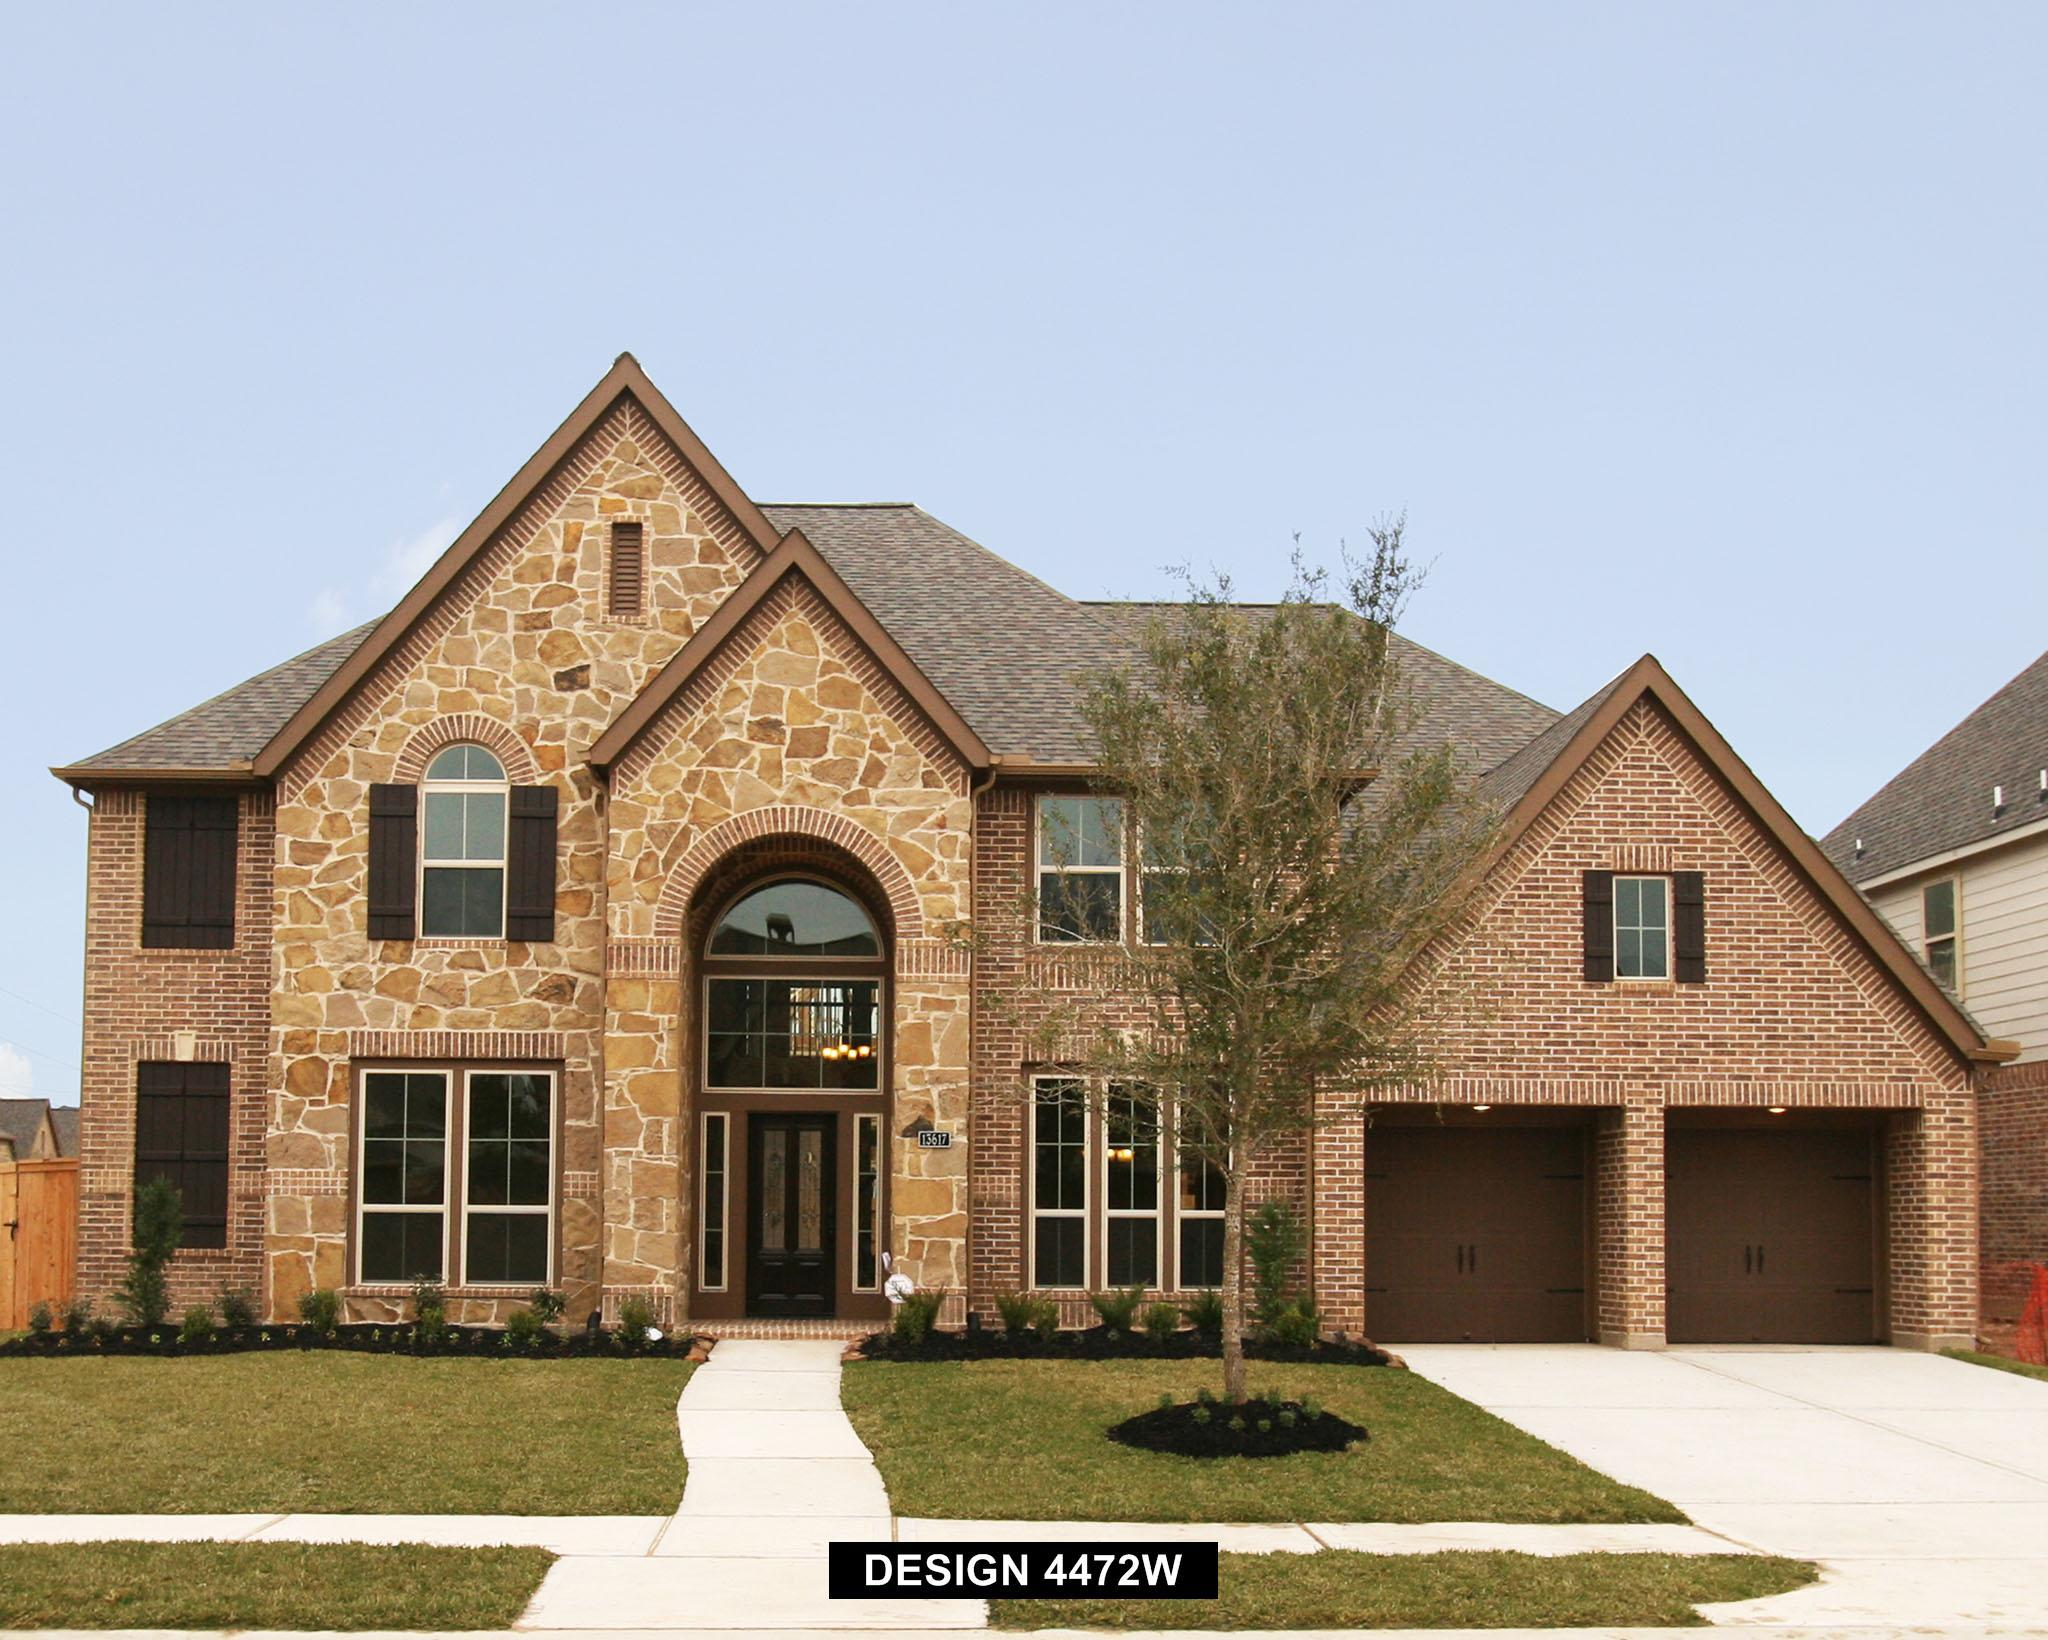 Perry Homes Southlake 70 39 4472w 1145862 Pearland Tx